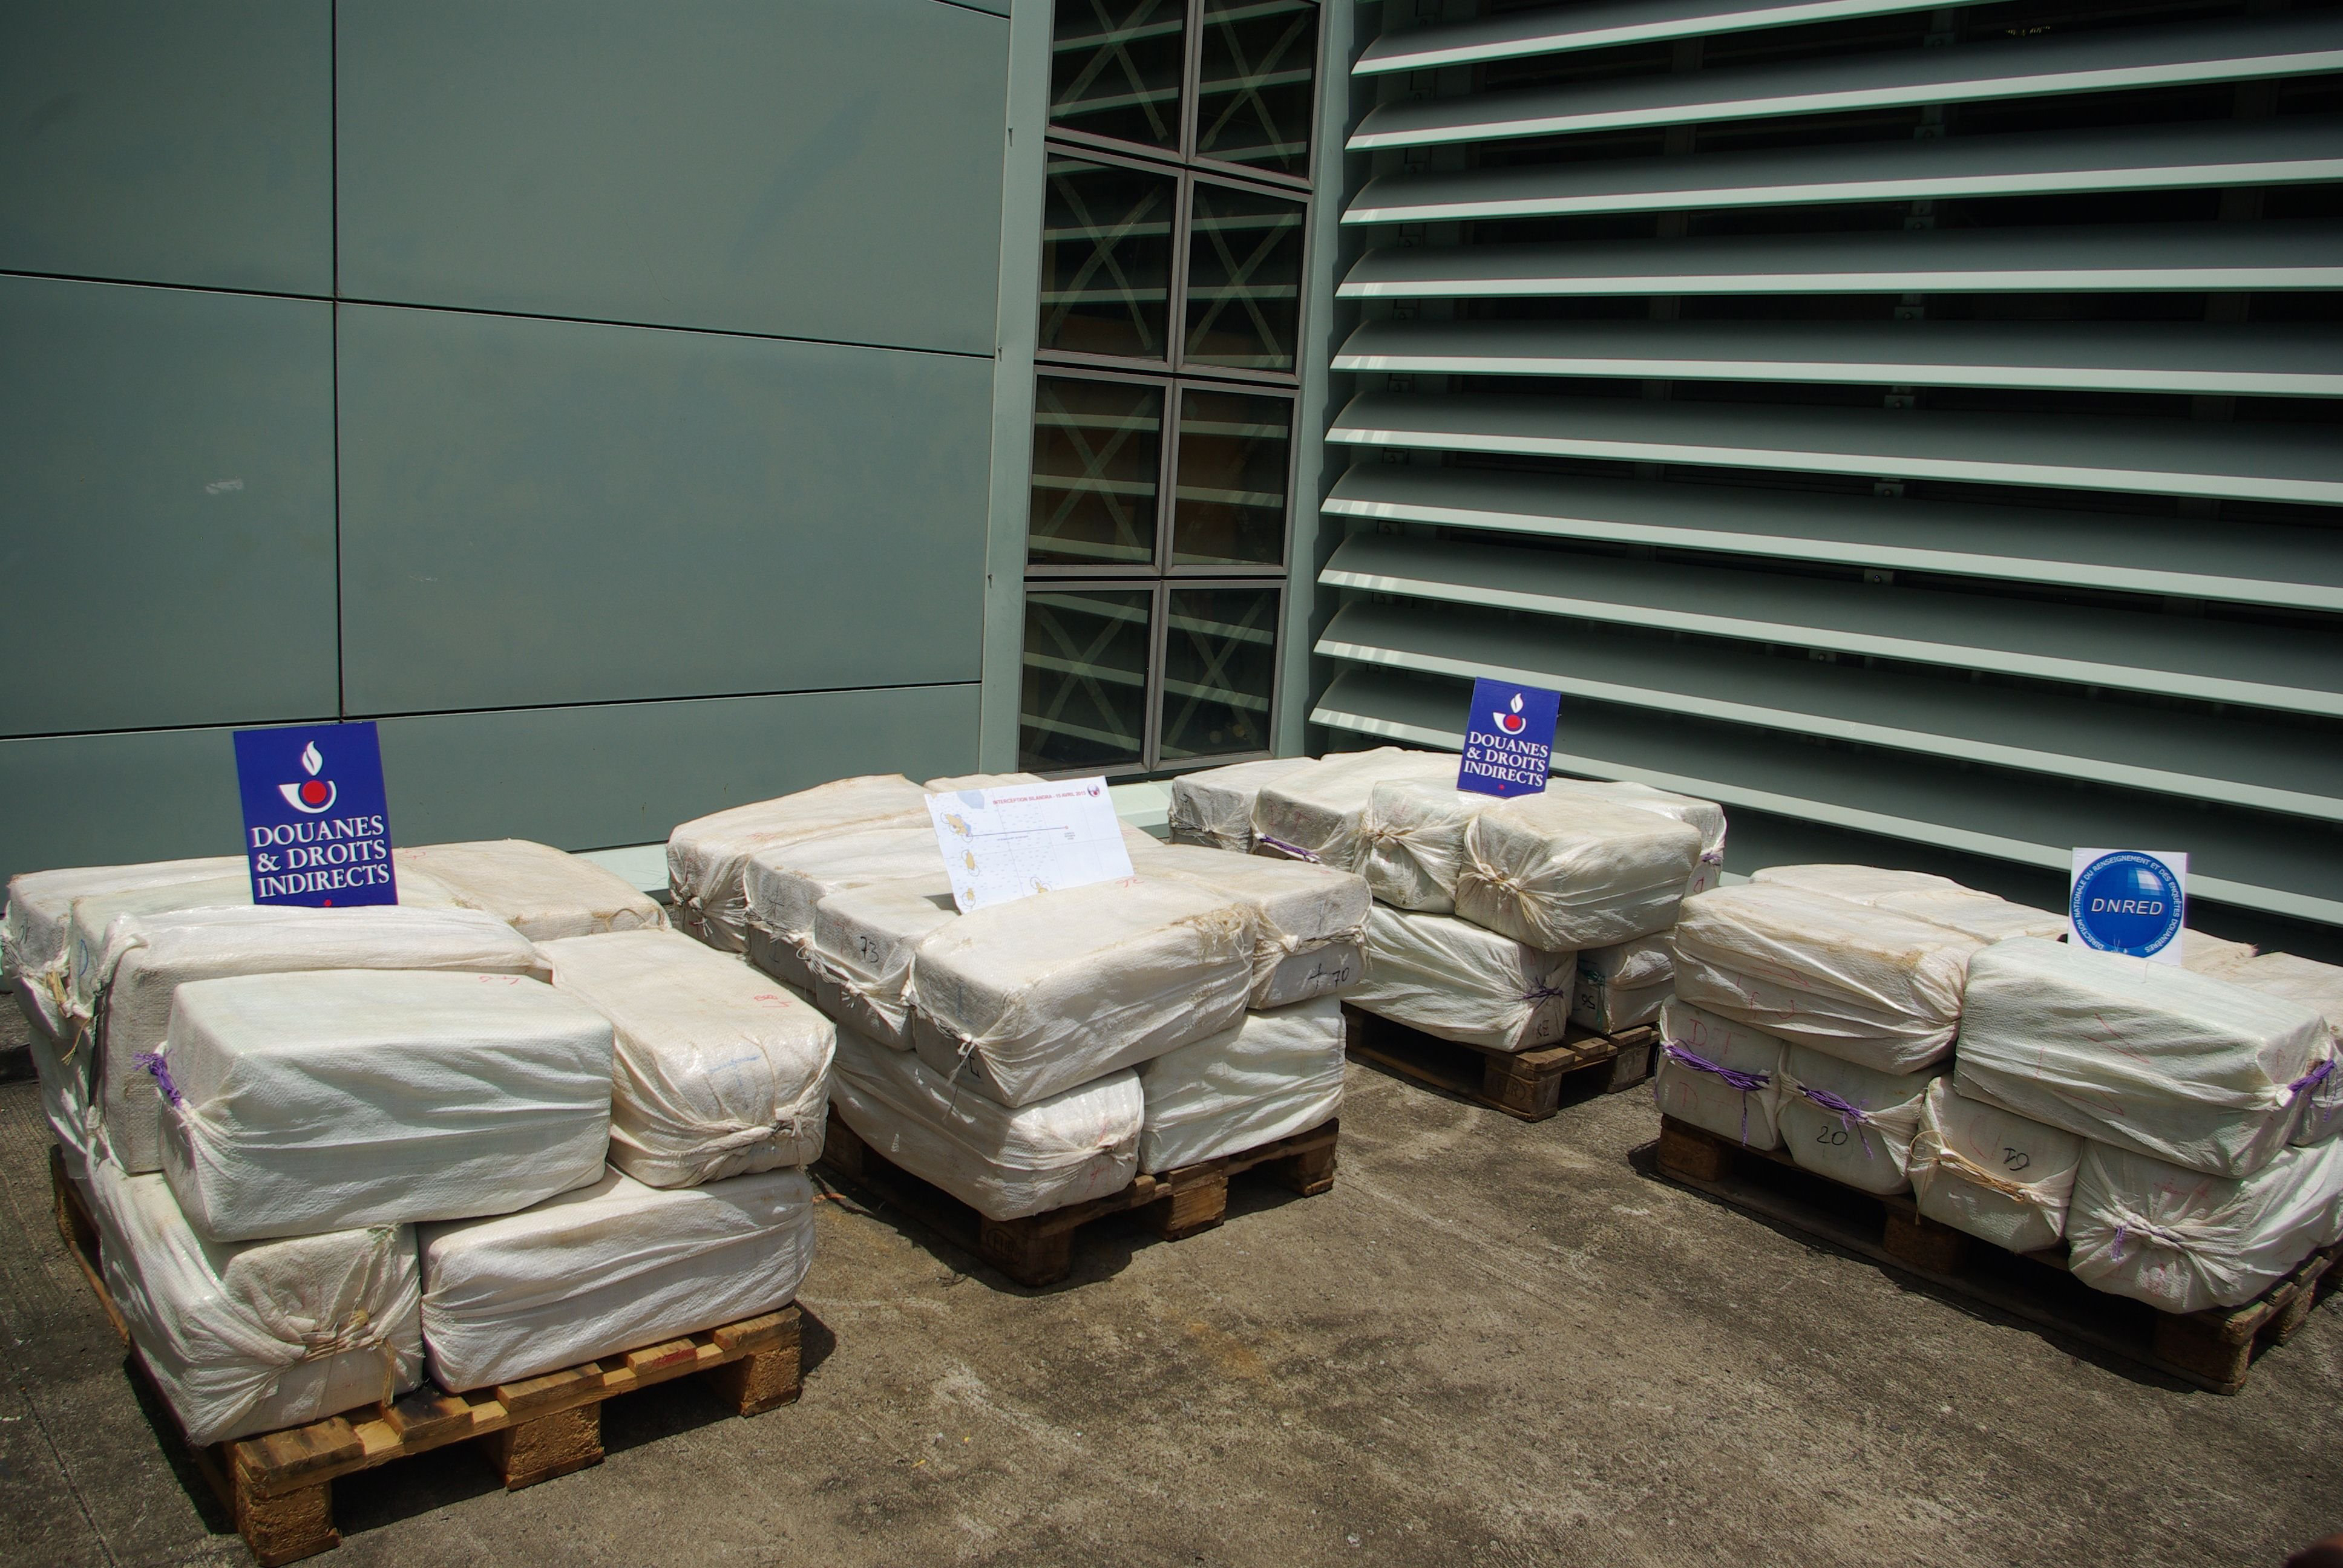 This file photo released on April 18, 2015 by French customs in Fort Saint-Louis military base in Fort-de-France, on the French Caribbean island of Martinique shows packs of cocaine stored after they were seized on April 15, 2015 on a sailboat off the French Caribbean island of Martinique.